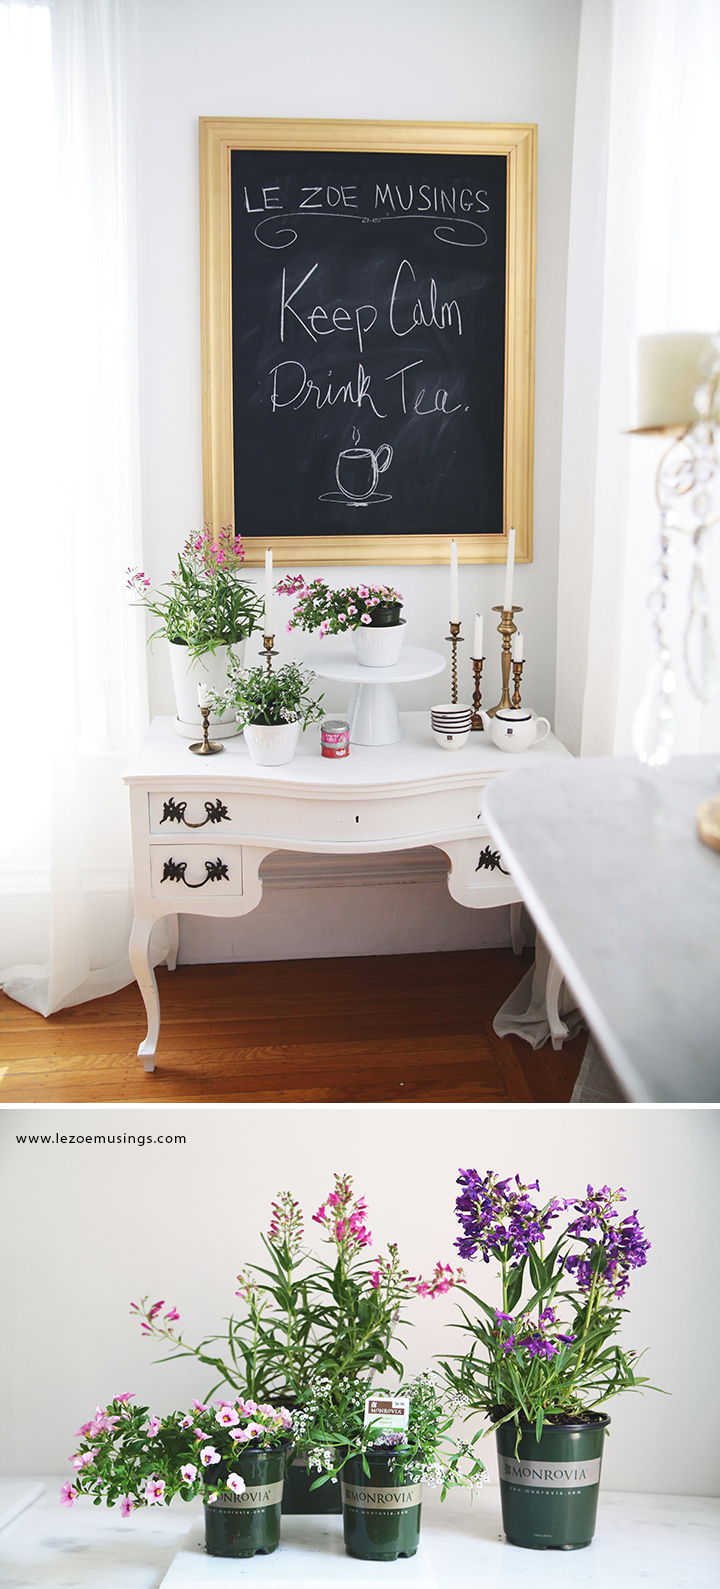 My Bloom-tiful Buffet Table by Le Zoe Musings 5